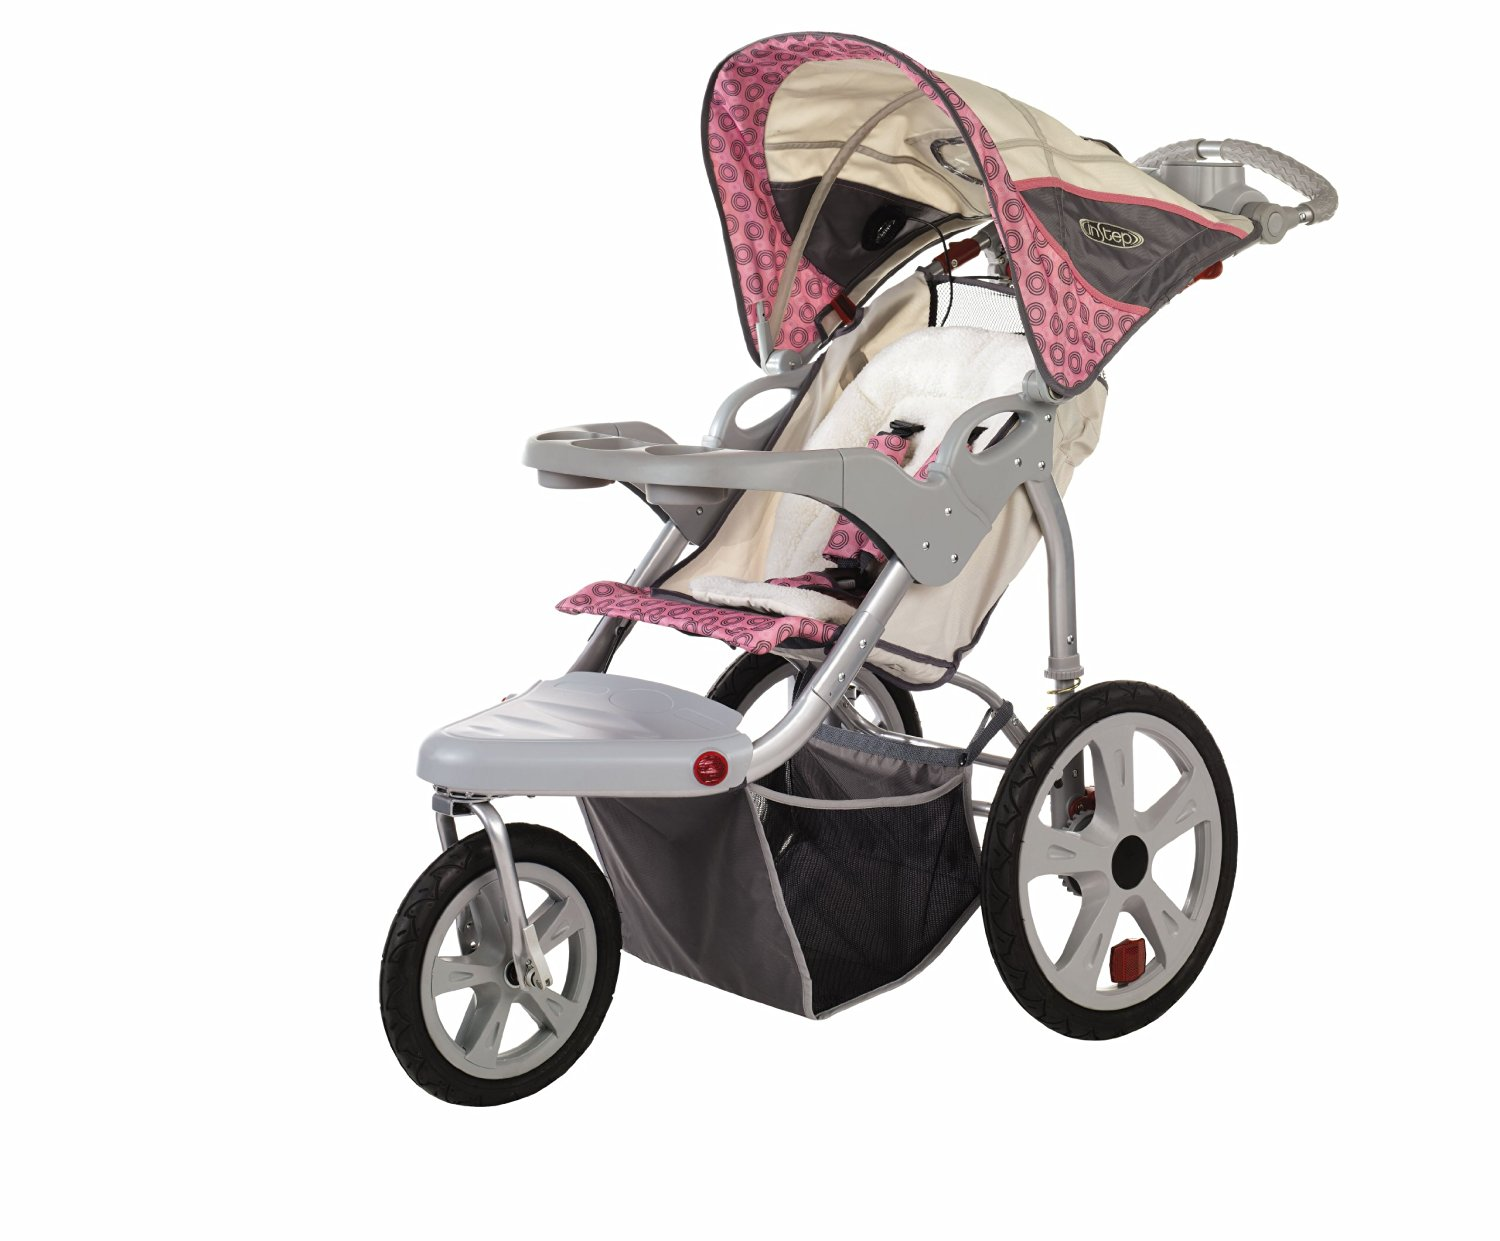 Pink Jogging Strollers: For Those Looking for Feminine ...